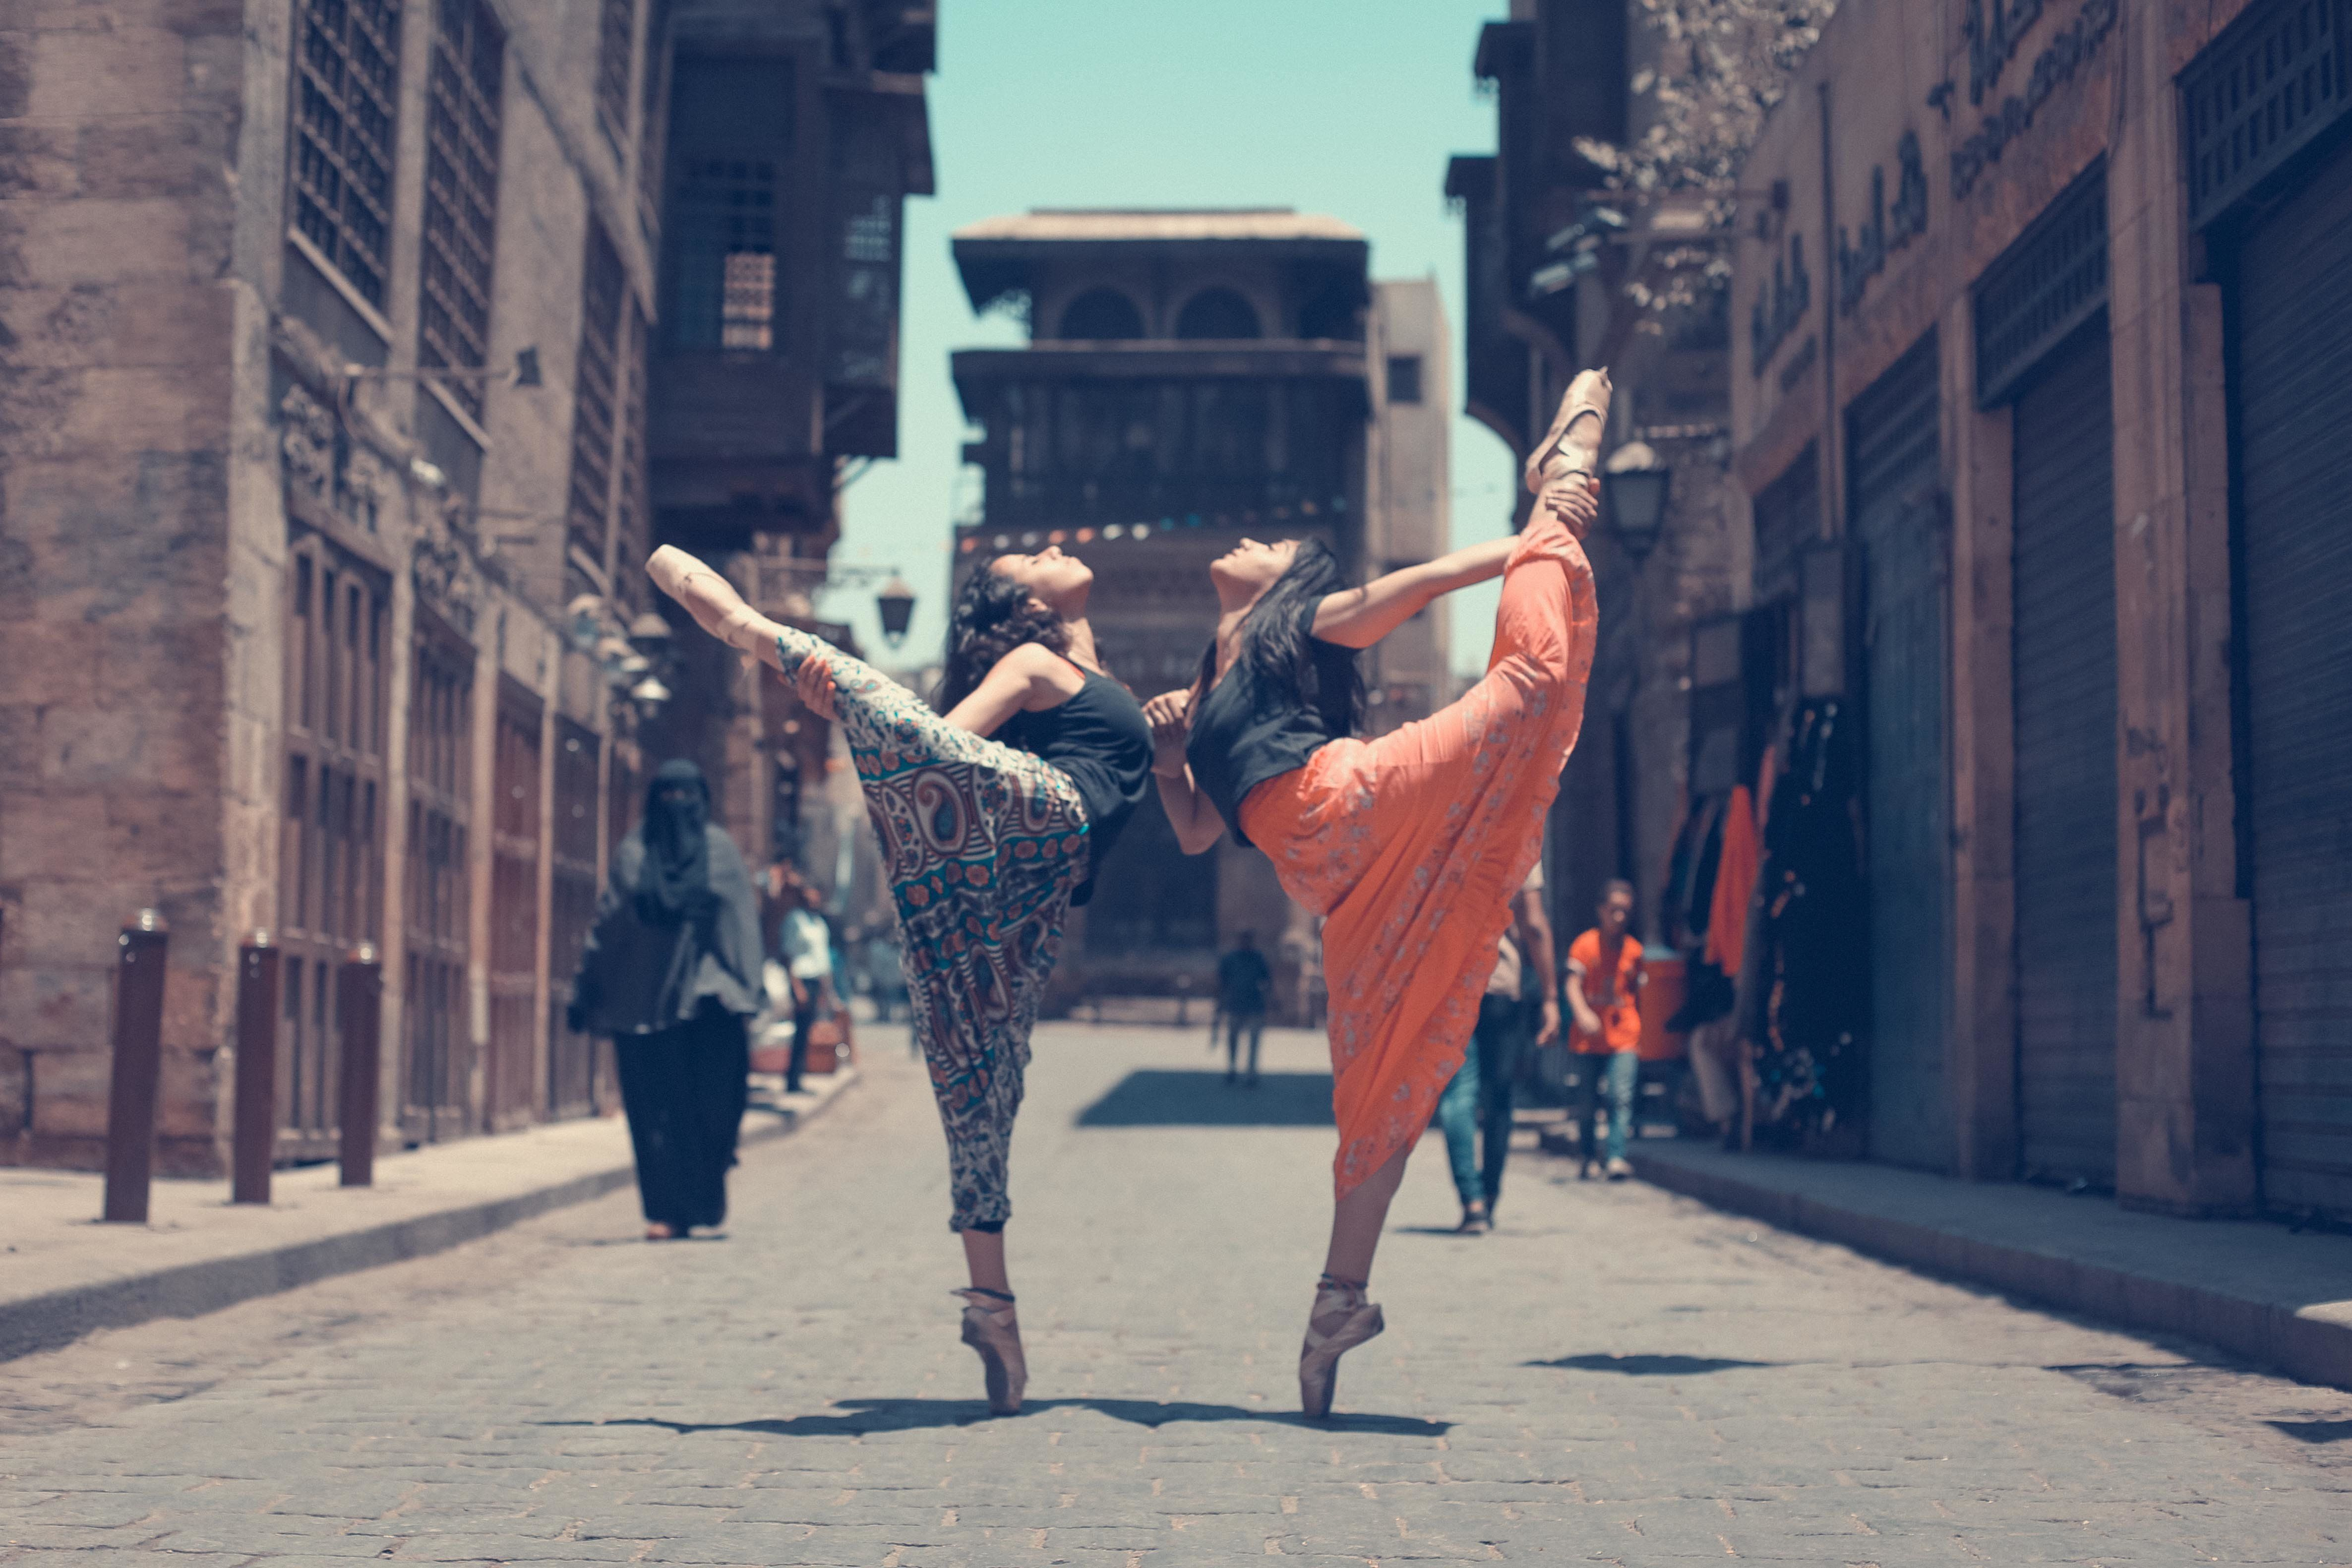 Women Reclaim The Streets Of Cairo Through Stunning Ballet